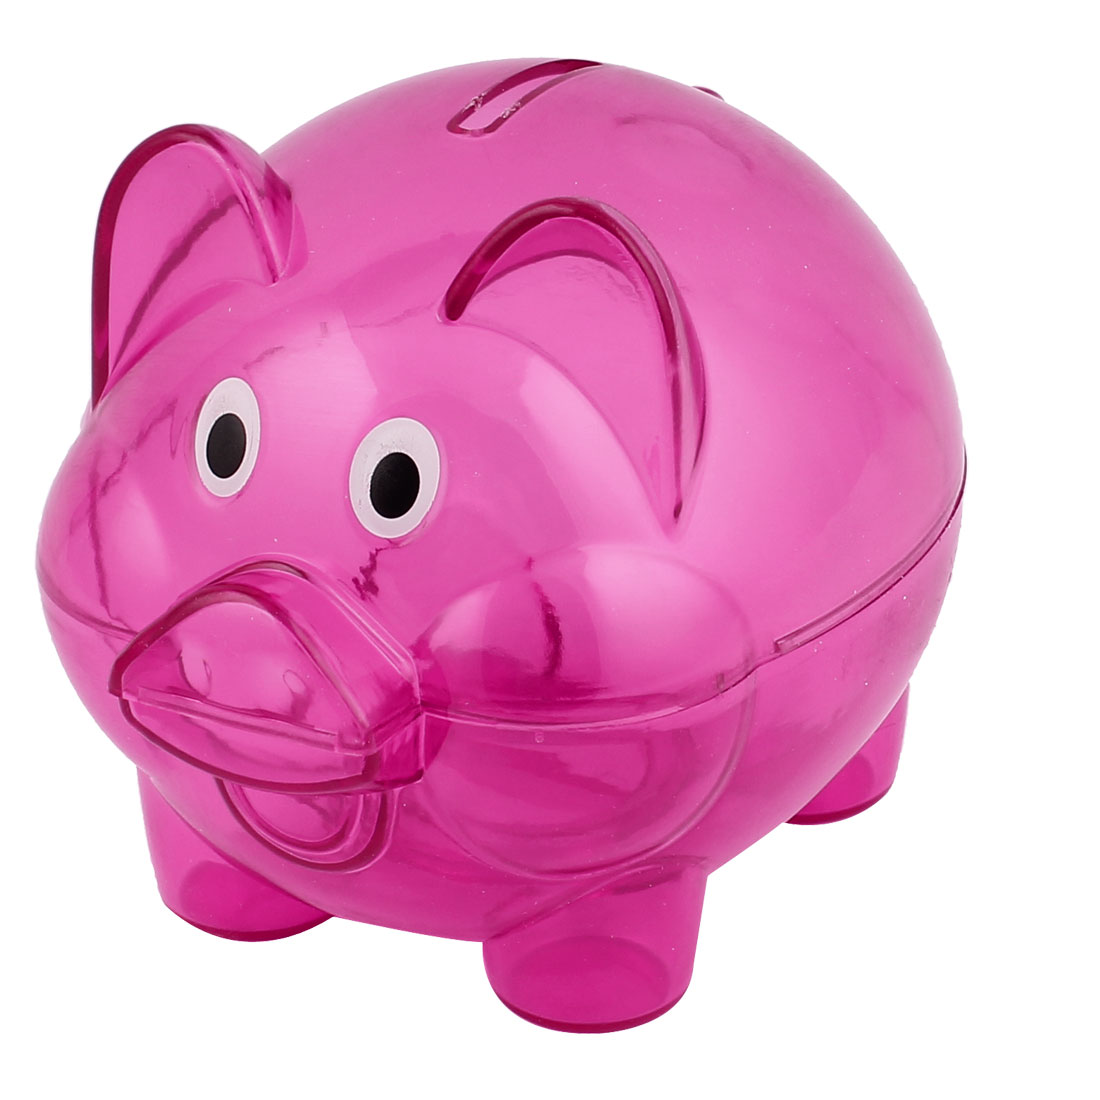 Xmas Gift Plastic Pig Shape Money Cash Saving Pot Coin Piggy Bank Clear Fuchsia